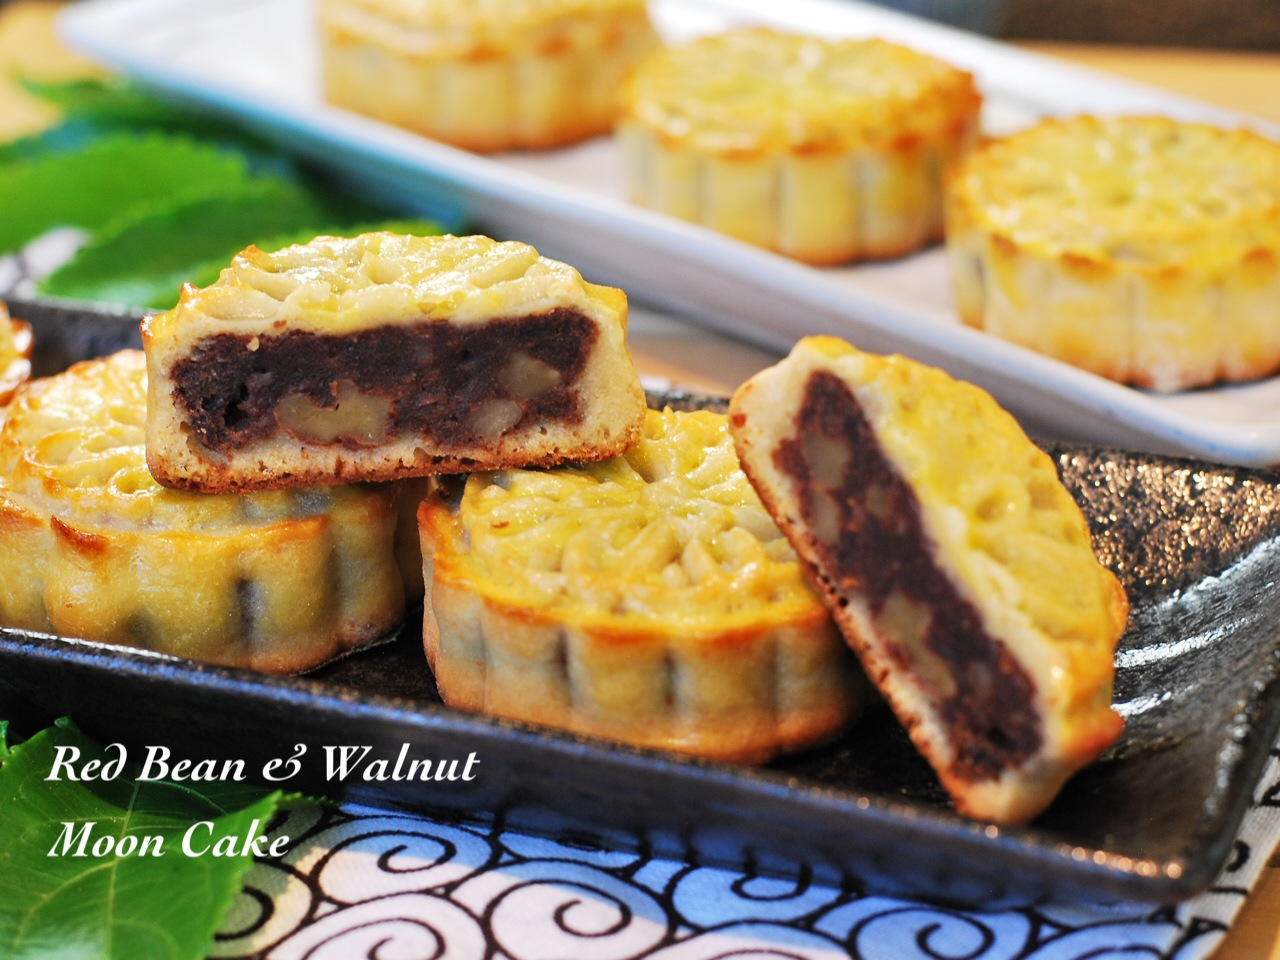 Red bean walnut moon cake